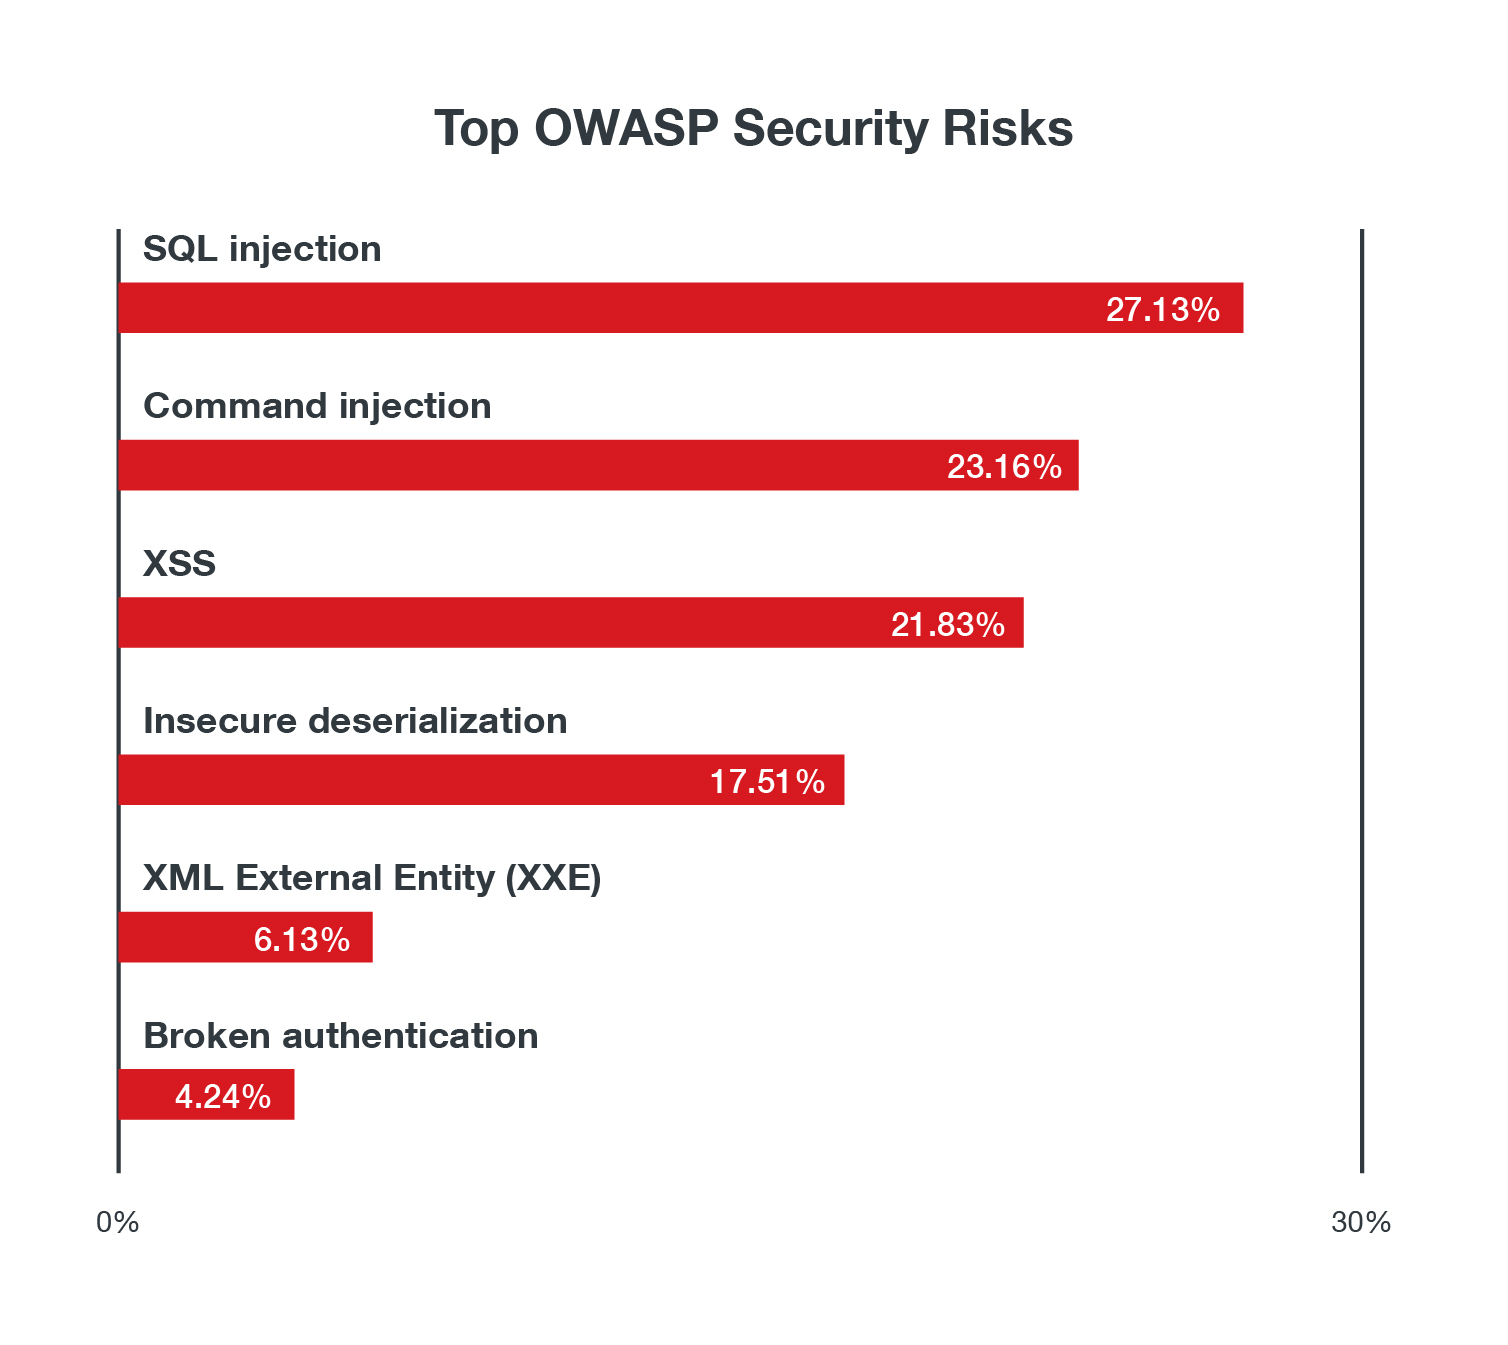 The top OWASP security risks by volume